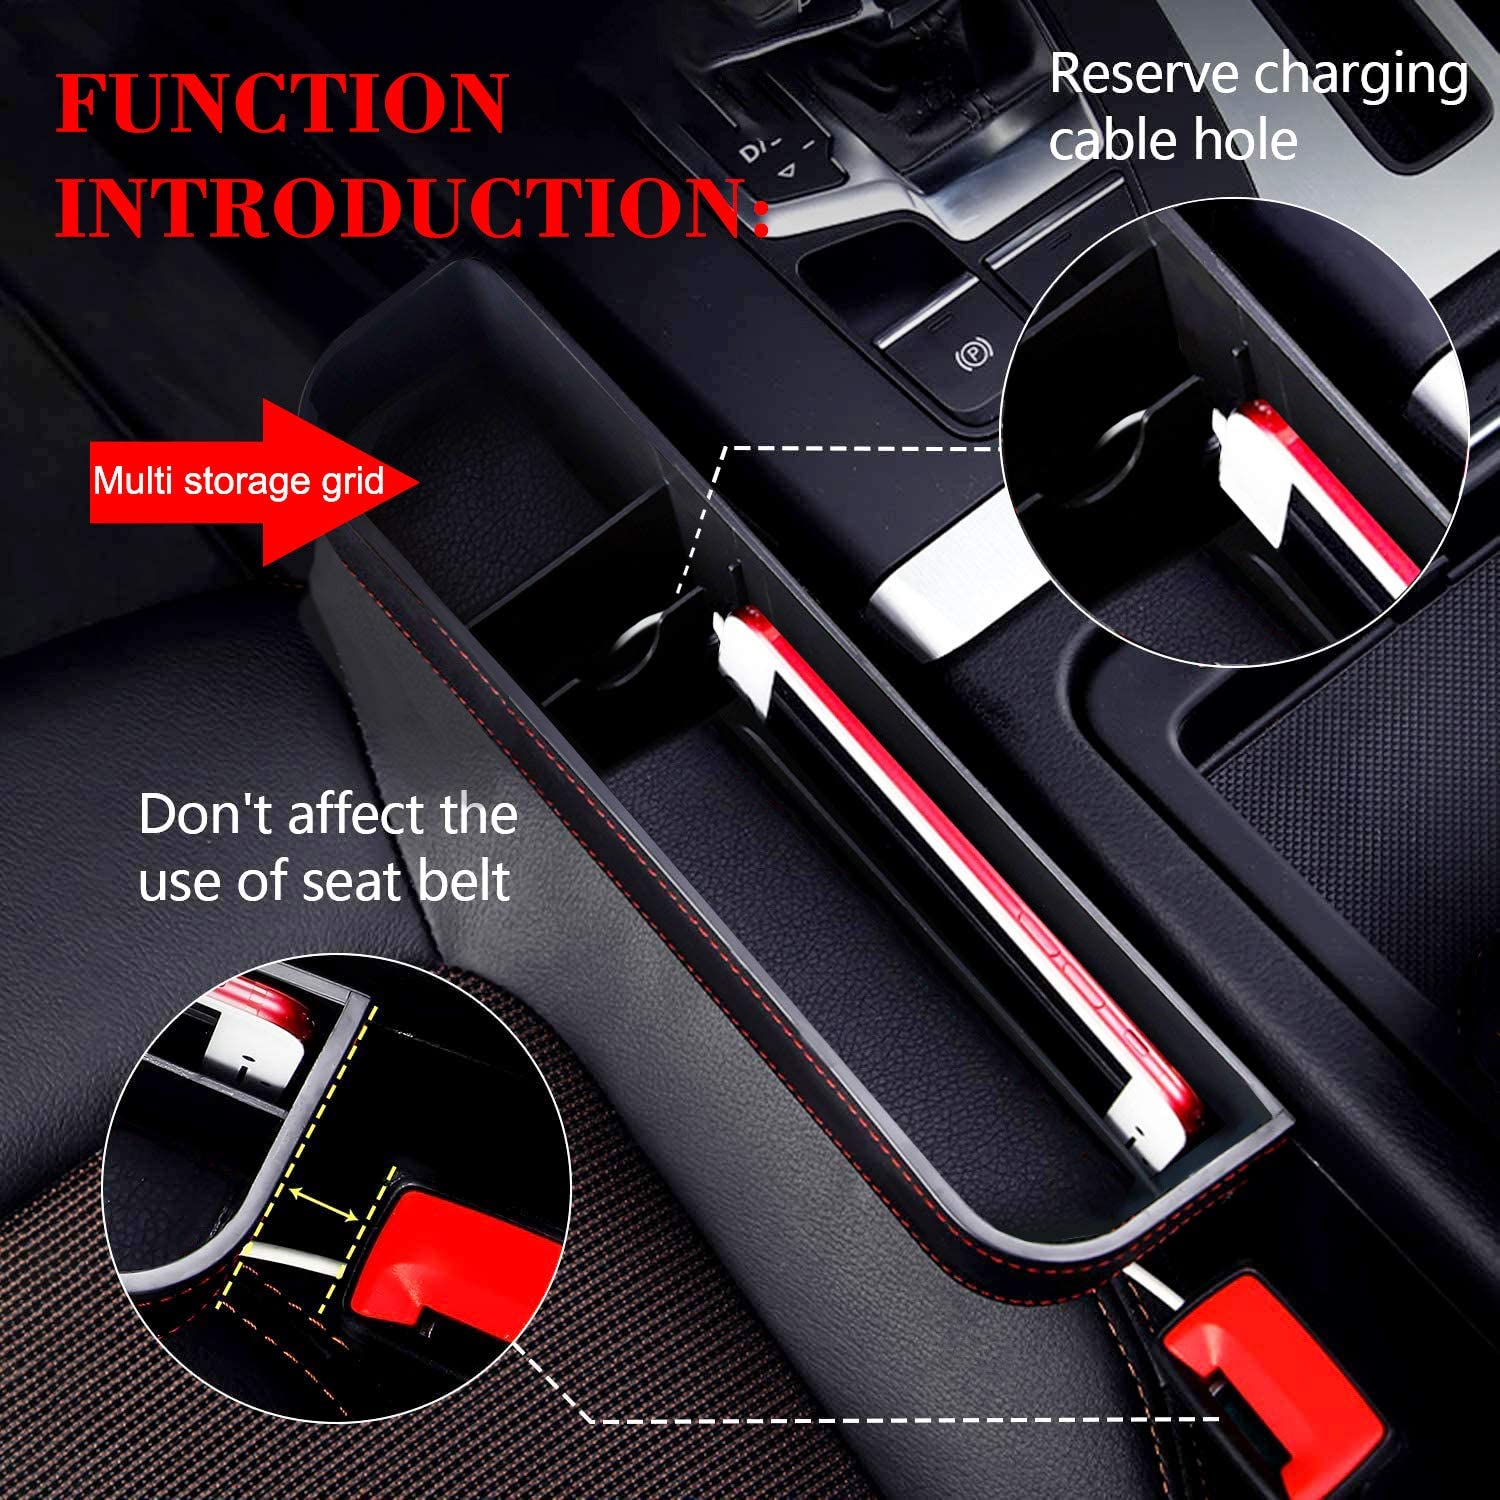 MAIALOT Car Seat Gap Organizer PU Leather Front Car Seat Gap Filler with Elasticity Bow Board Multifunctional Car Pocket Black Seat Console Organizer For Cell phone Coins Keys Sunglasses